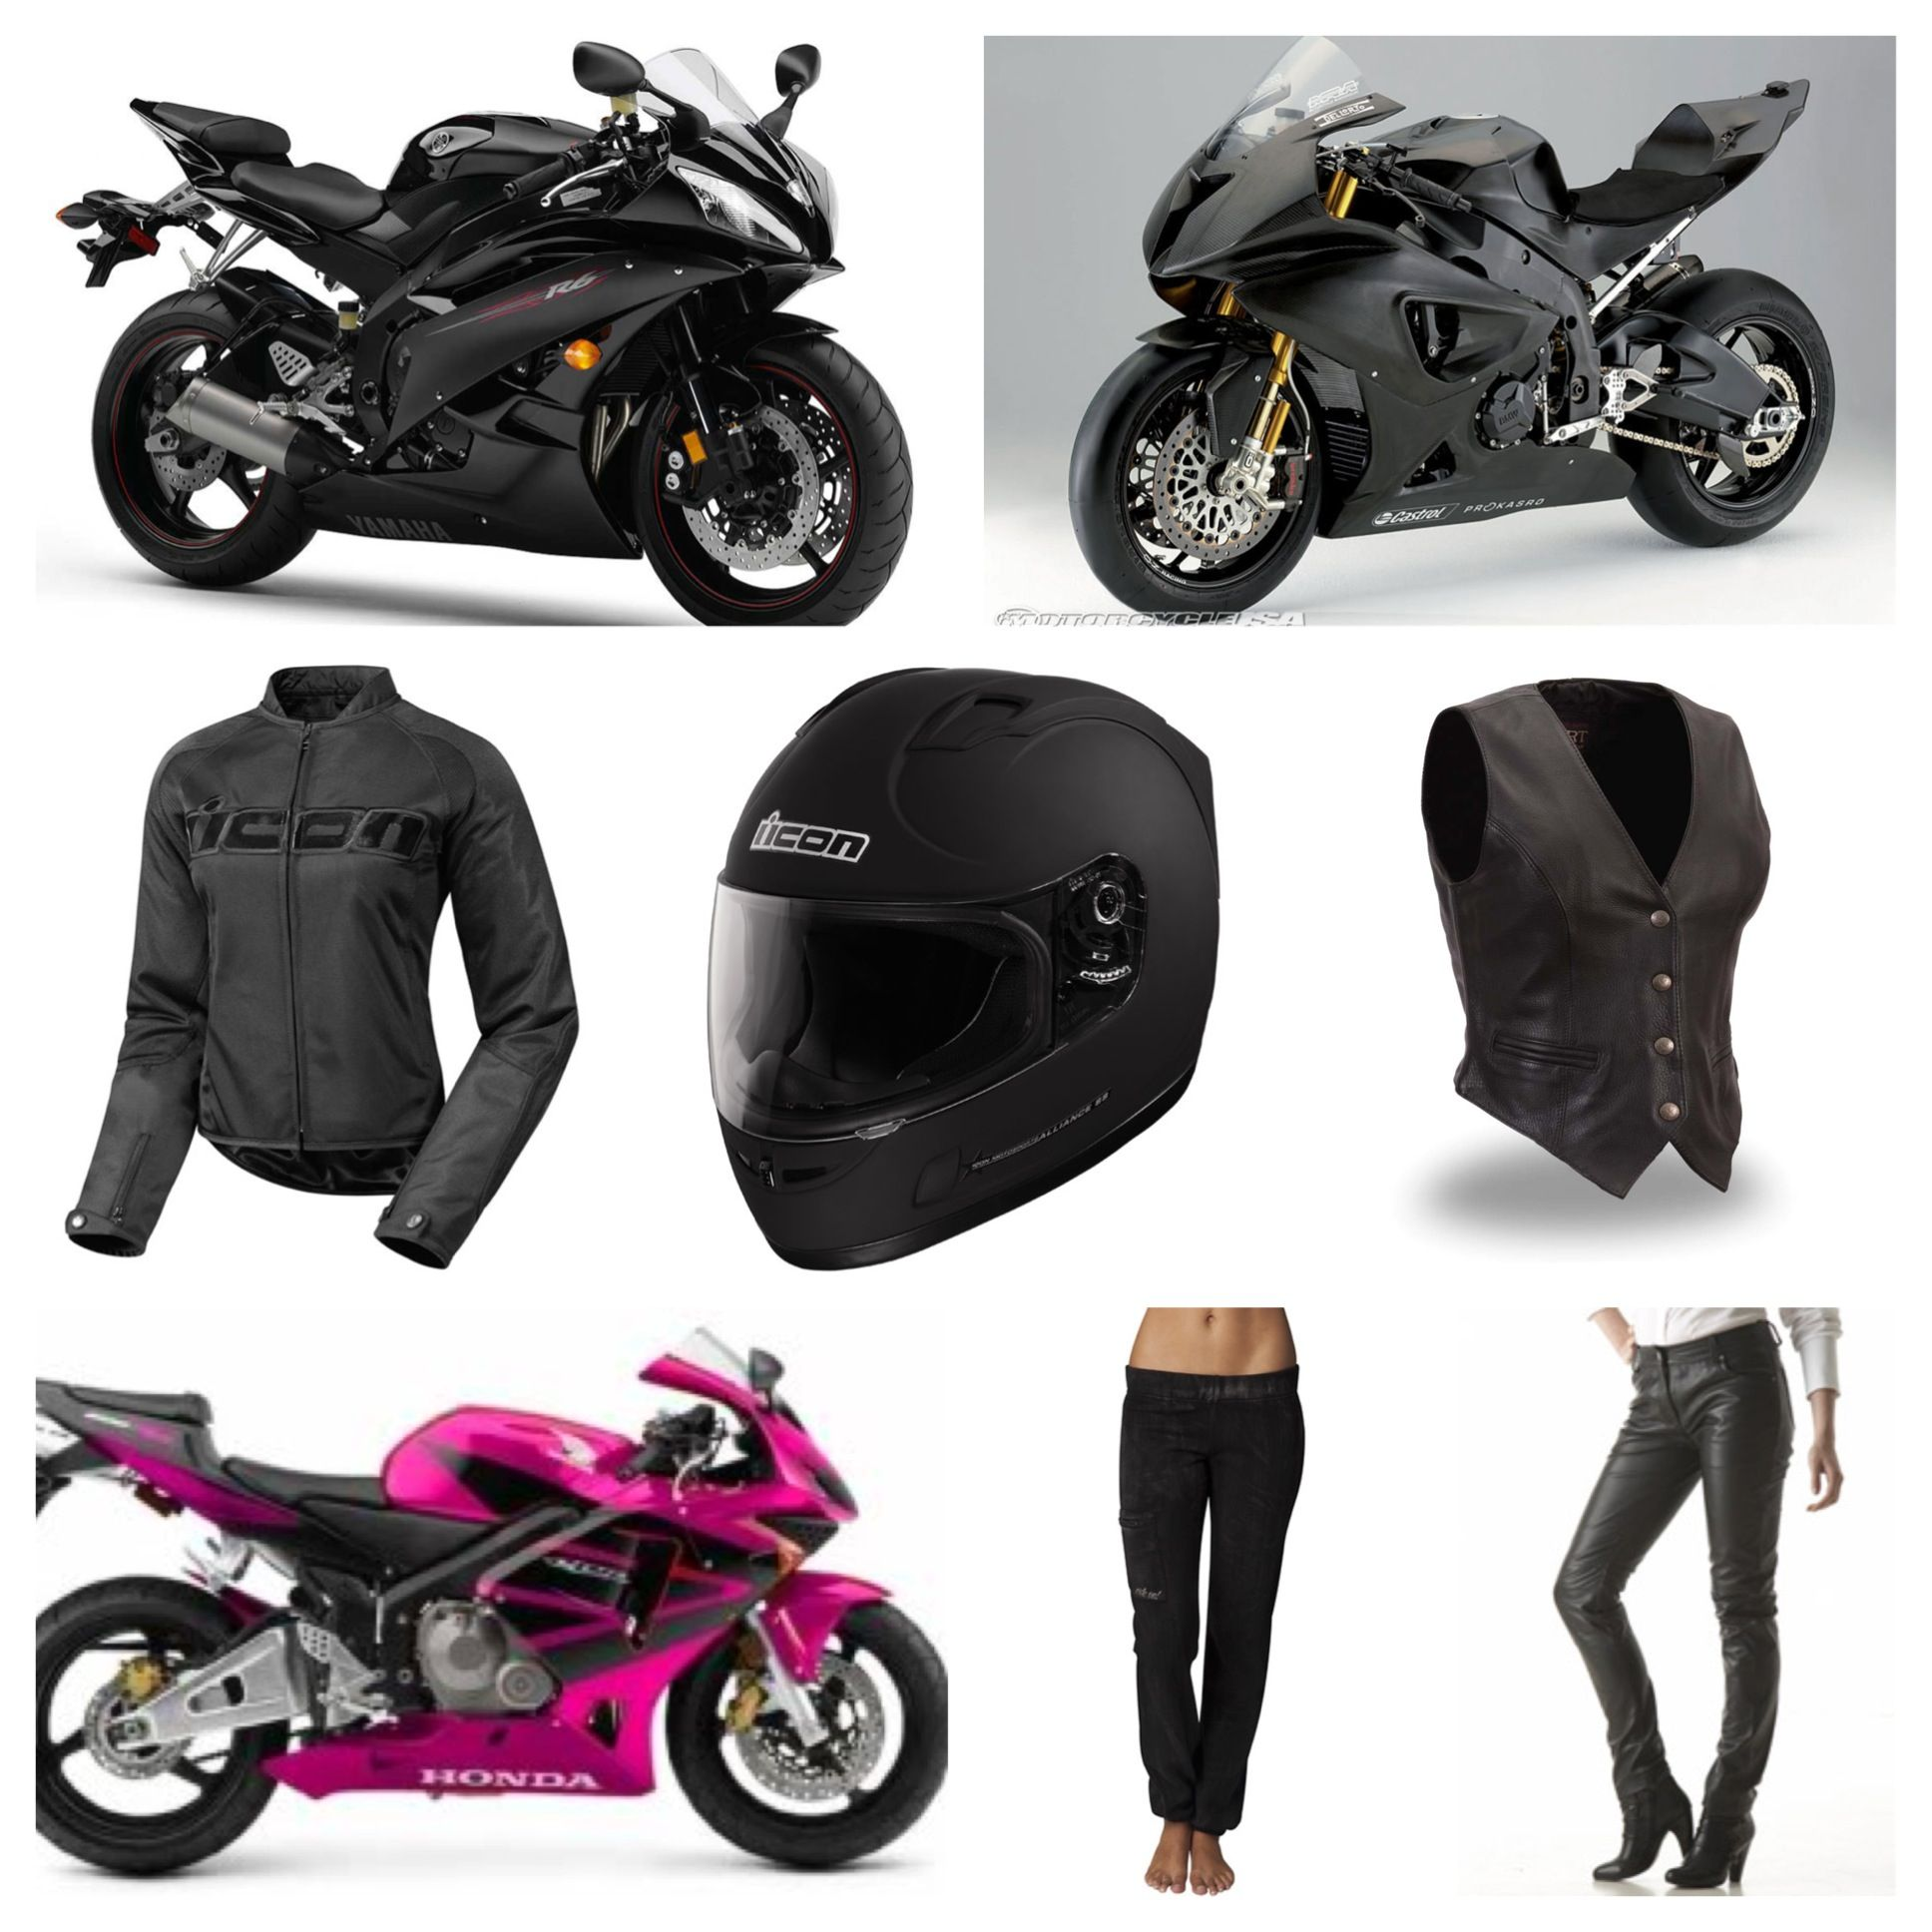 Street Bike Crotch Rocket Performance Motorcycle Sport And